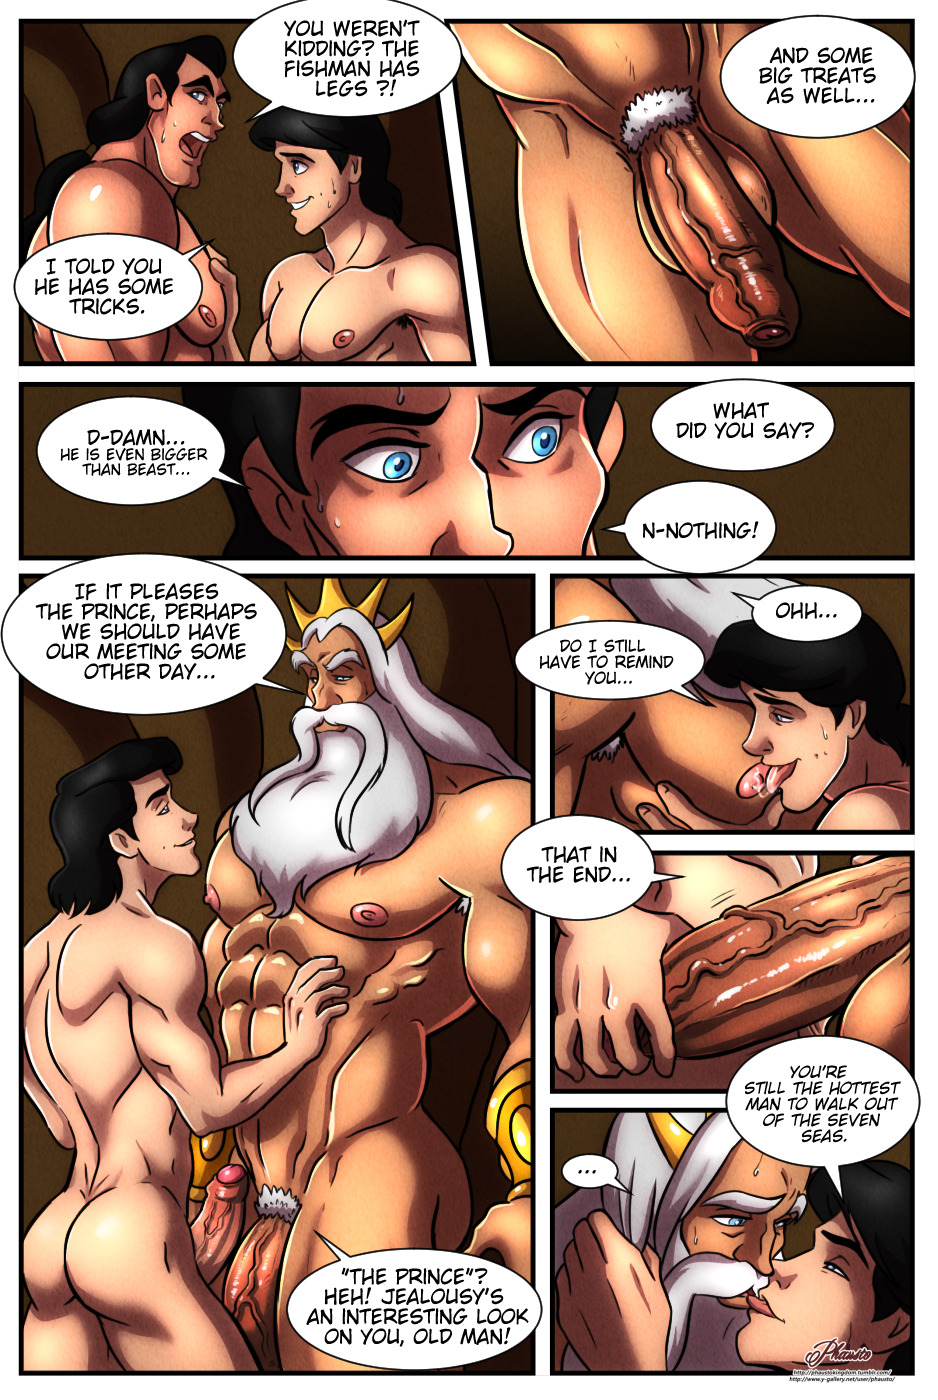 3_boys 3_humans 3_males 3boys 3humans 3males ass beard big_penis butt disney english_text erect_penis erection gaston gay huge_penis human king_triton kissing large_penis licking_nipples male male/male male_only mature mature_male muscle muscles naked nude old_man older_male older_on_younger older_younger penis phausto prince_eric sex trio